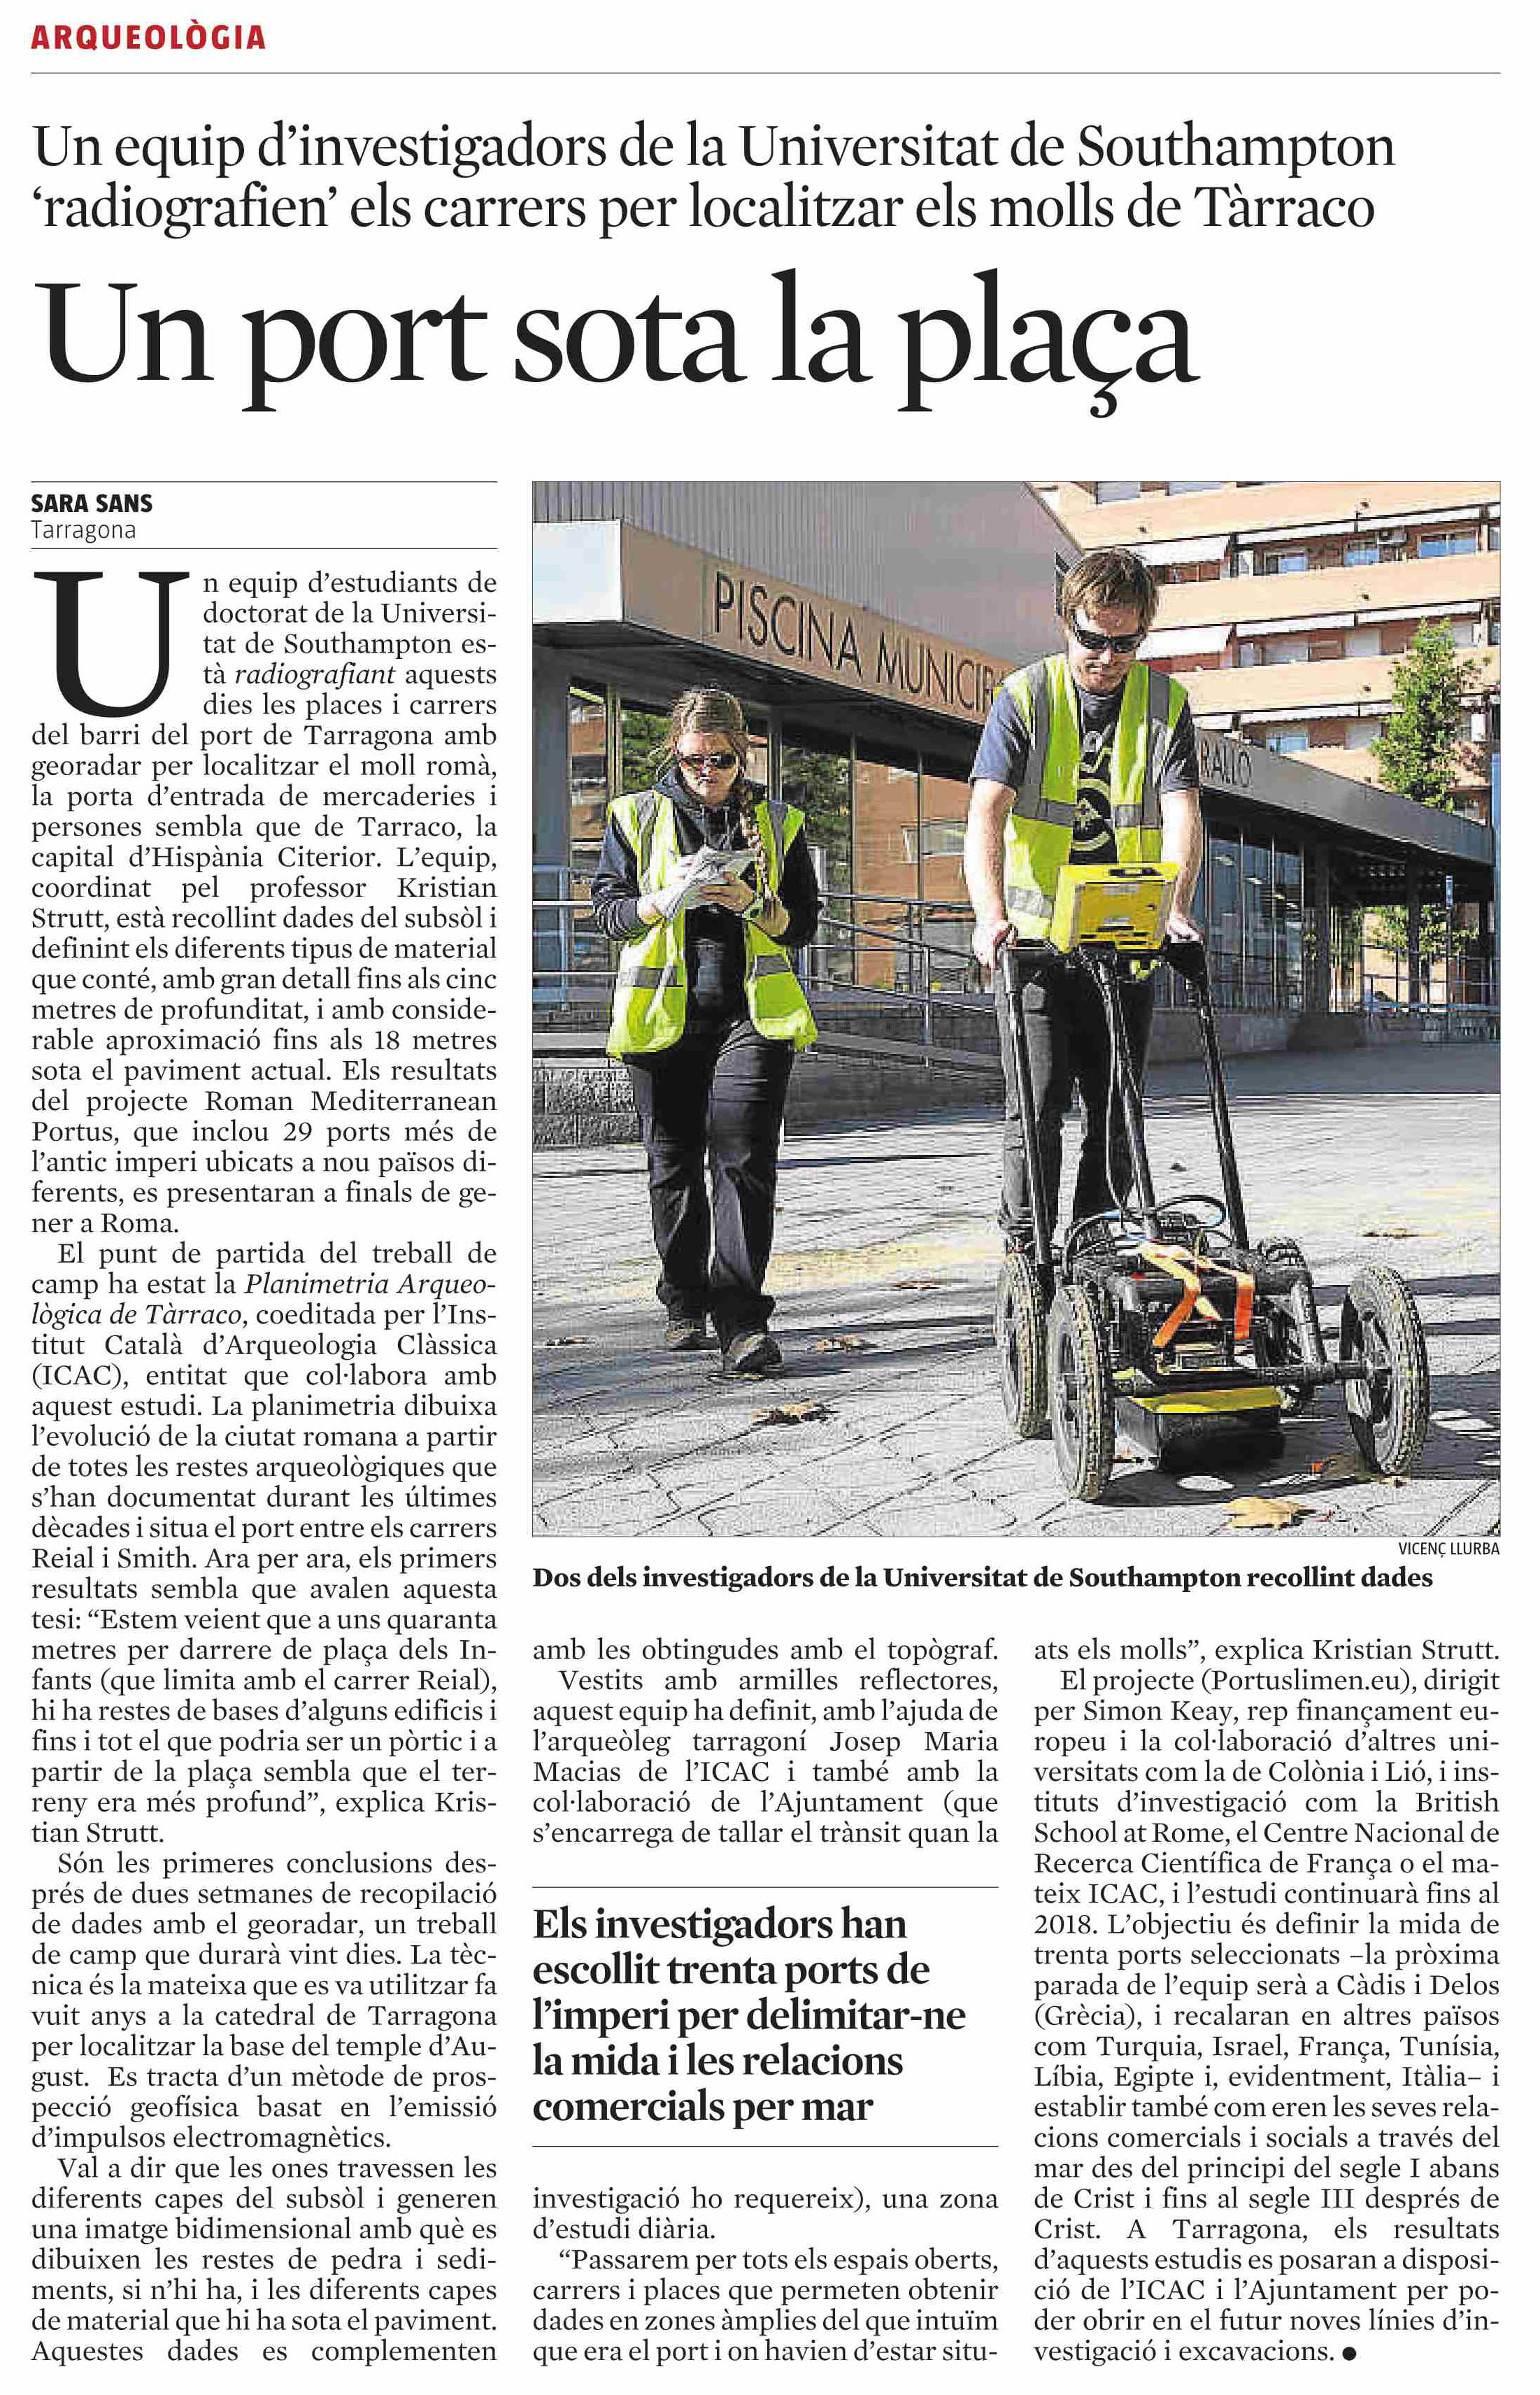 Paper published in La Vanguardia the 11th of november